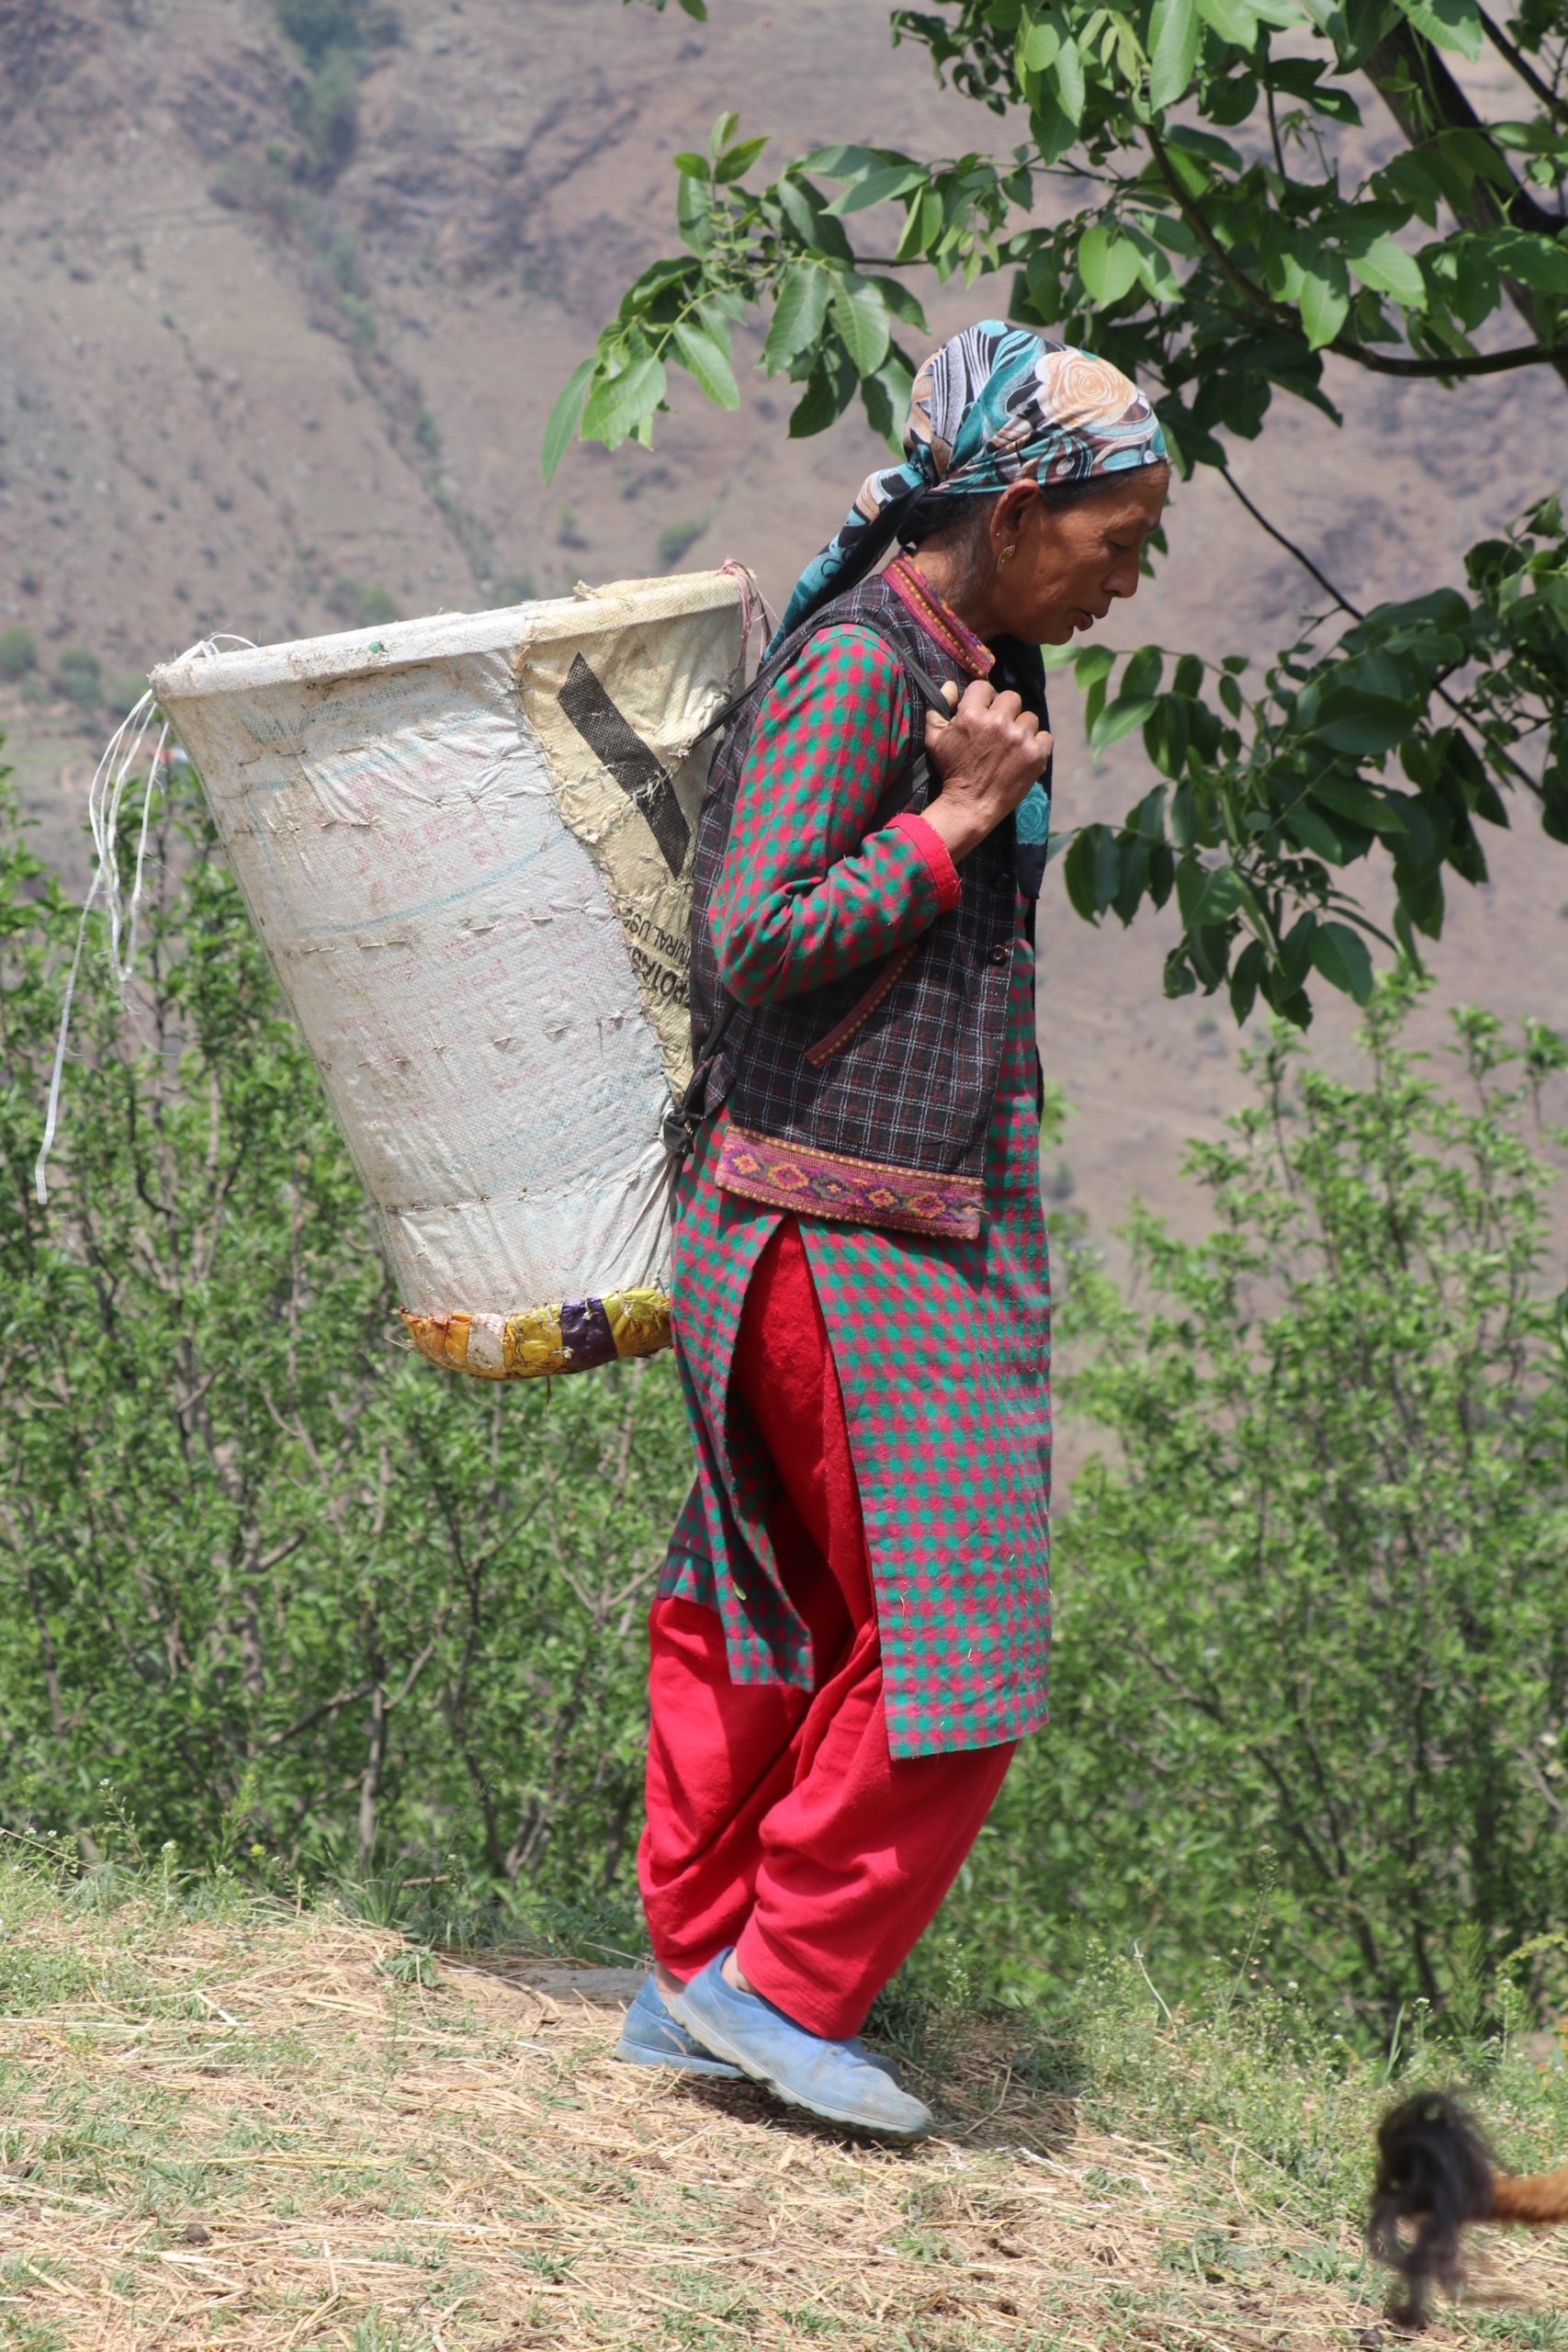 Woman with basket on her back